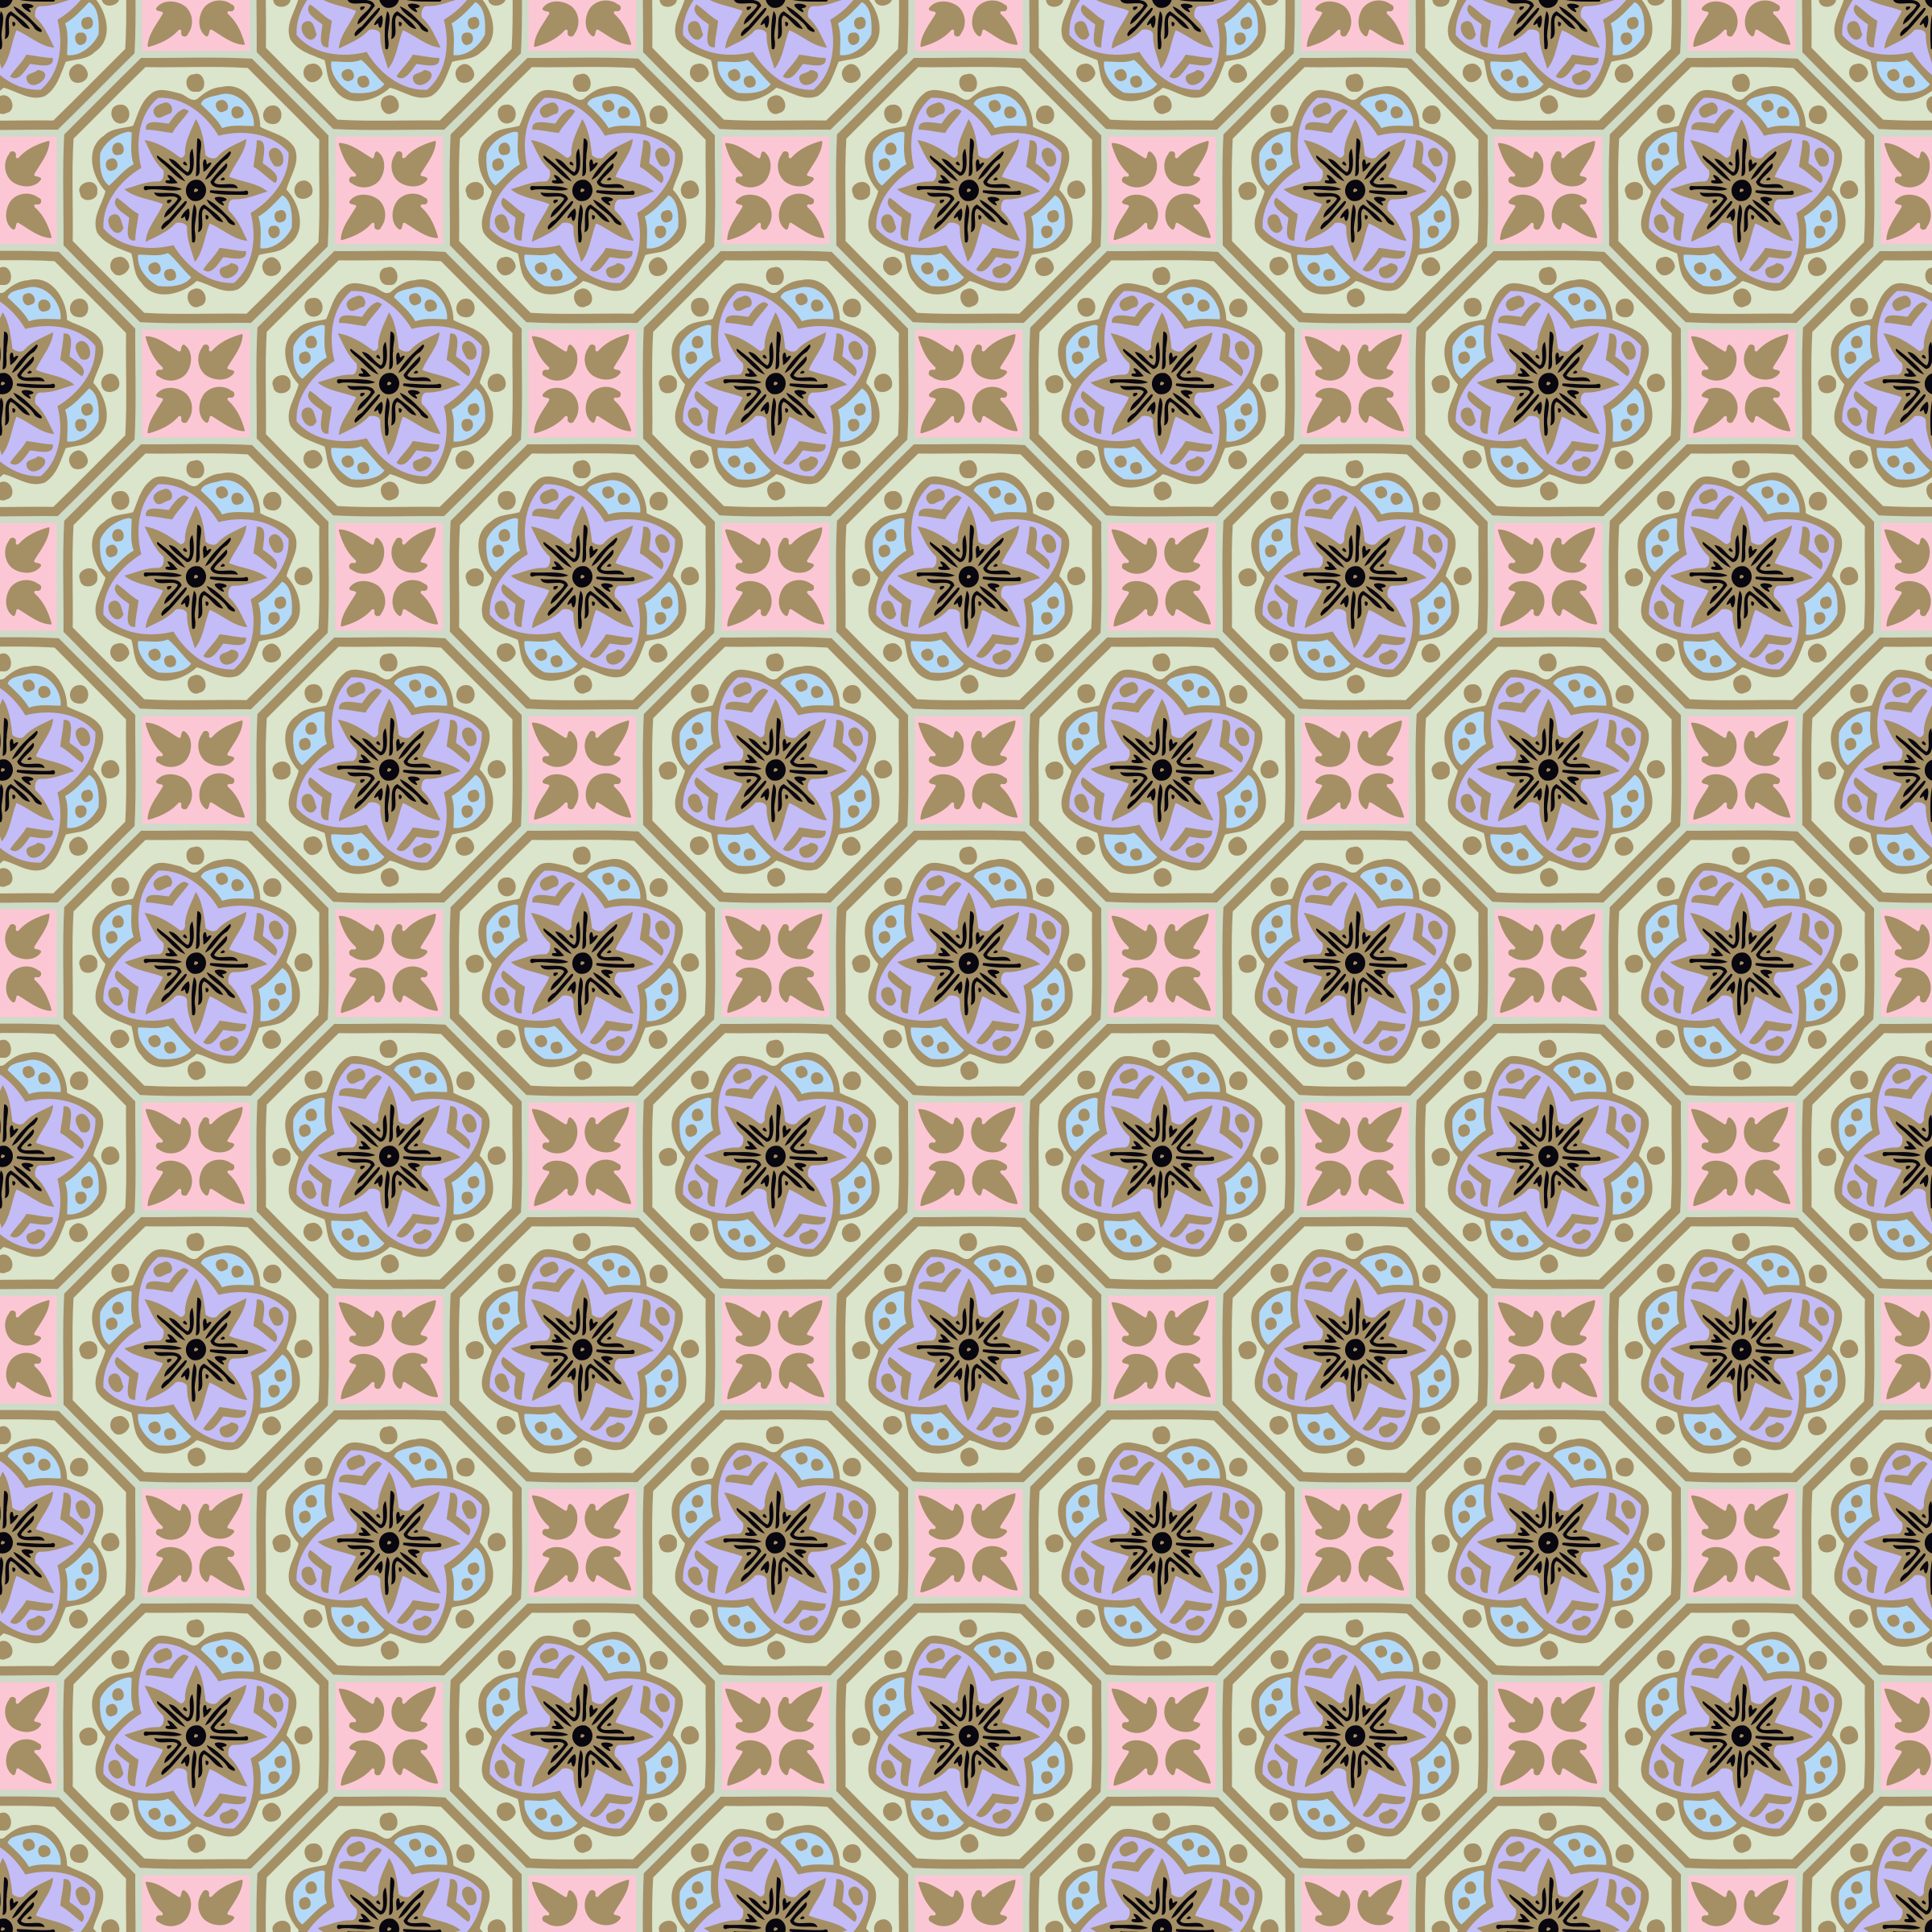 Background pattern 119 (colour 2) by Firkin